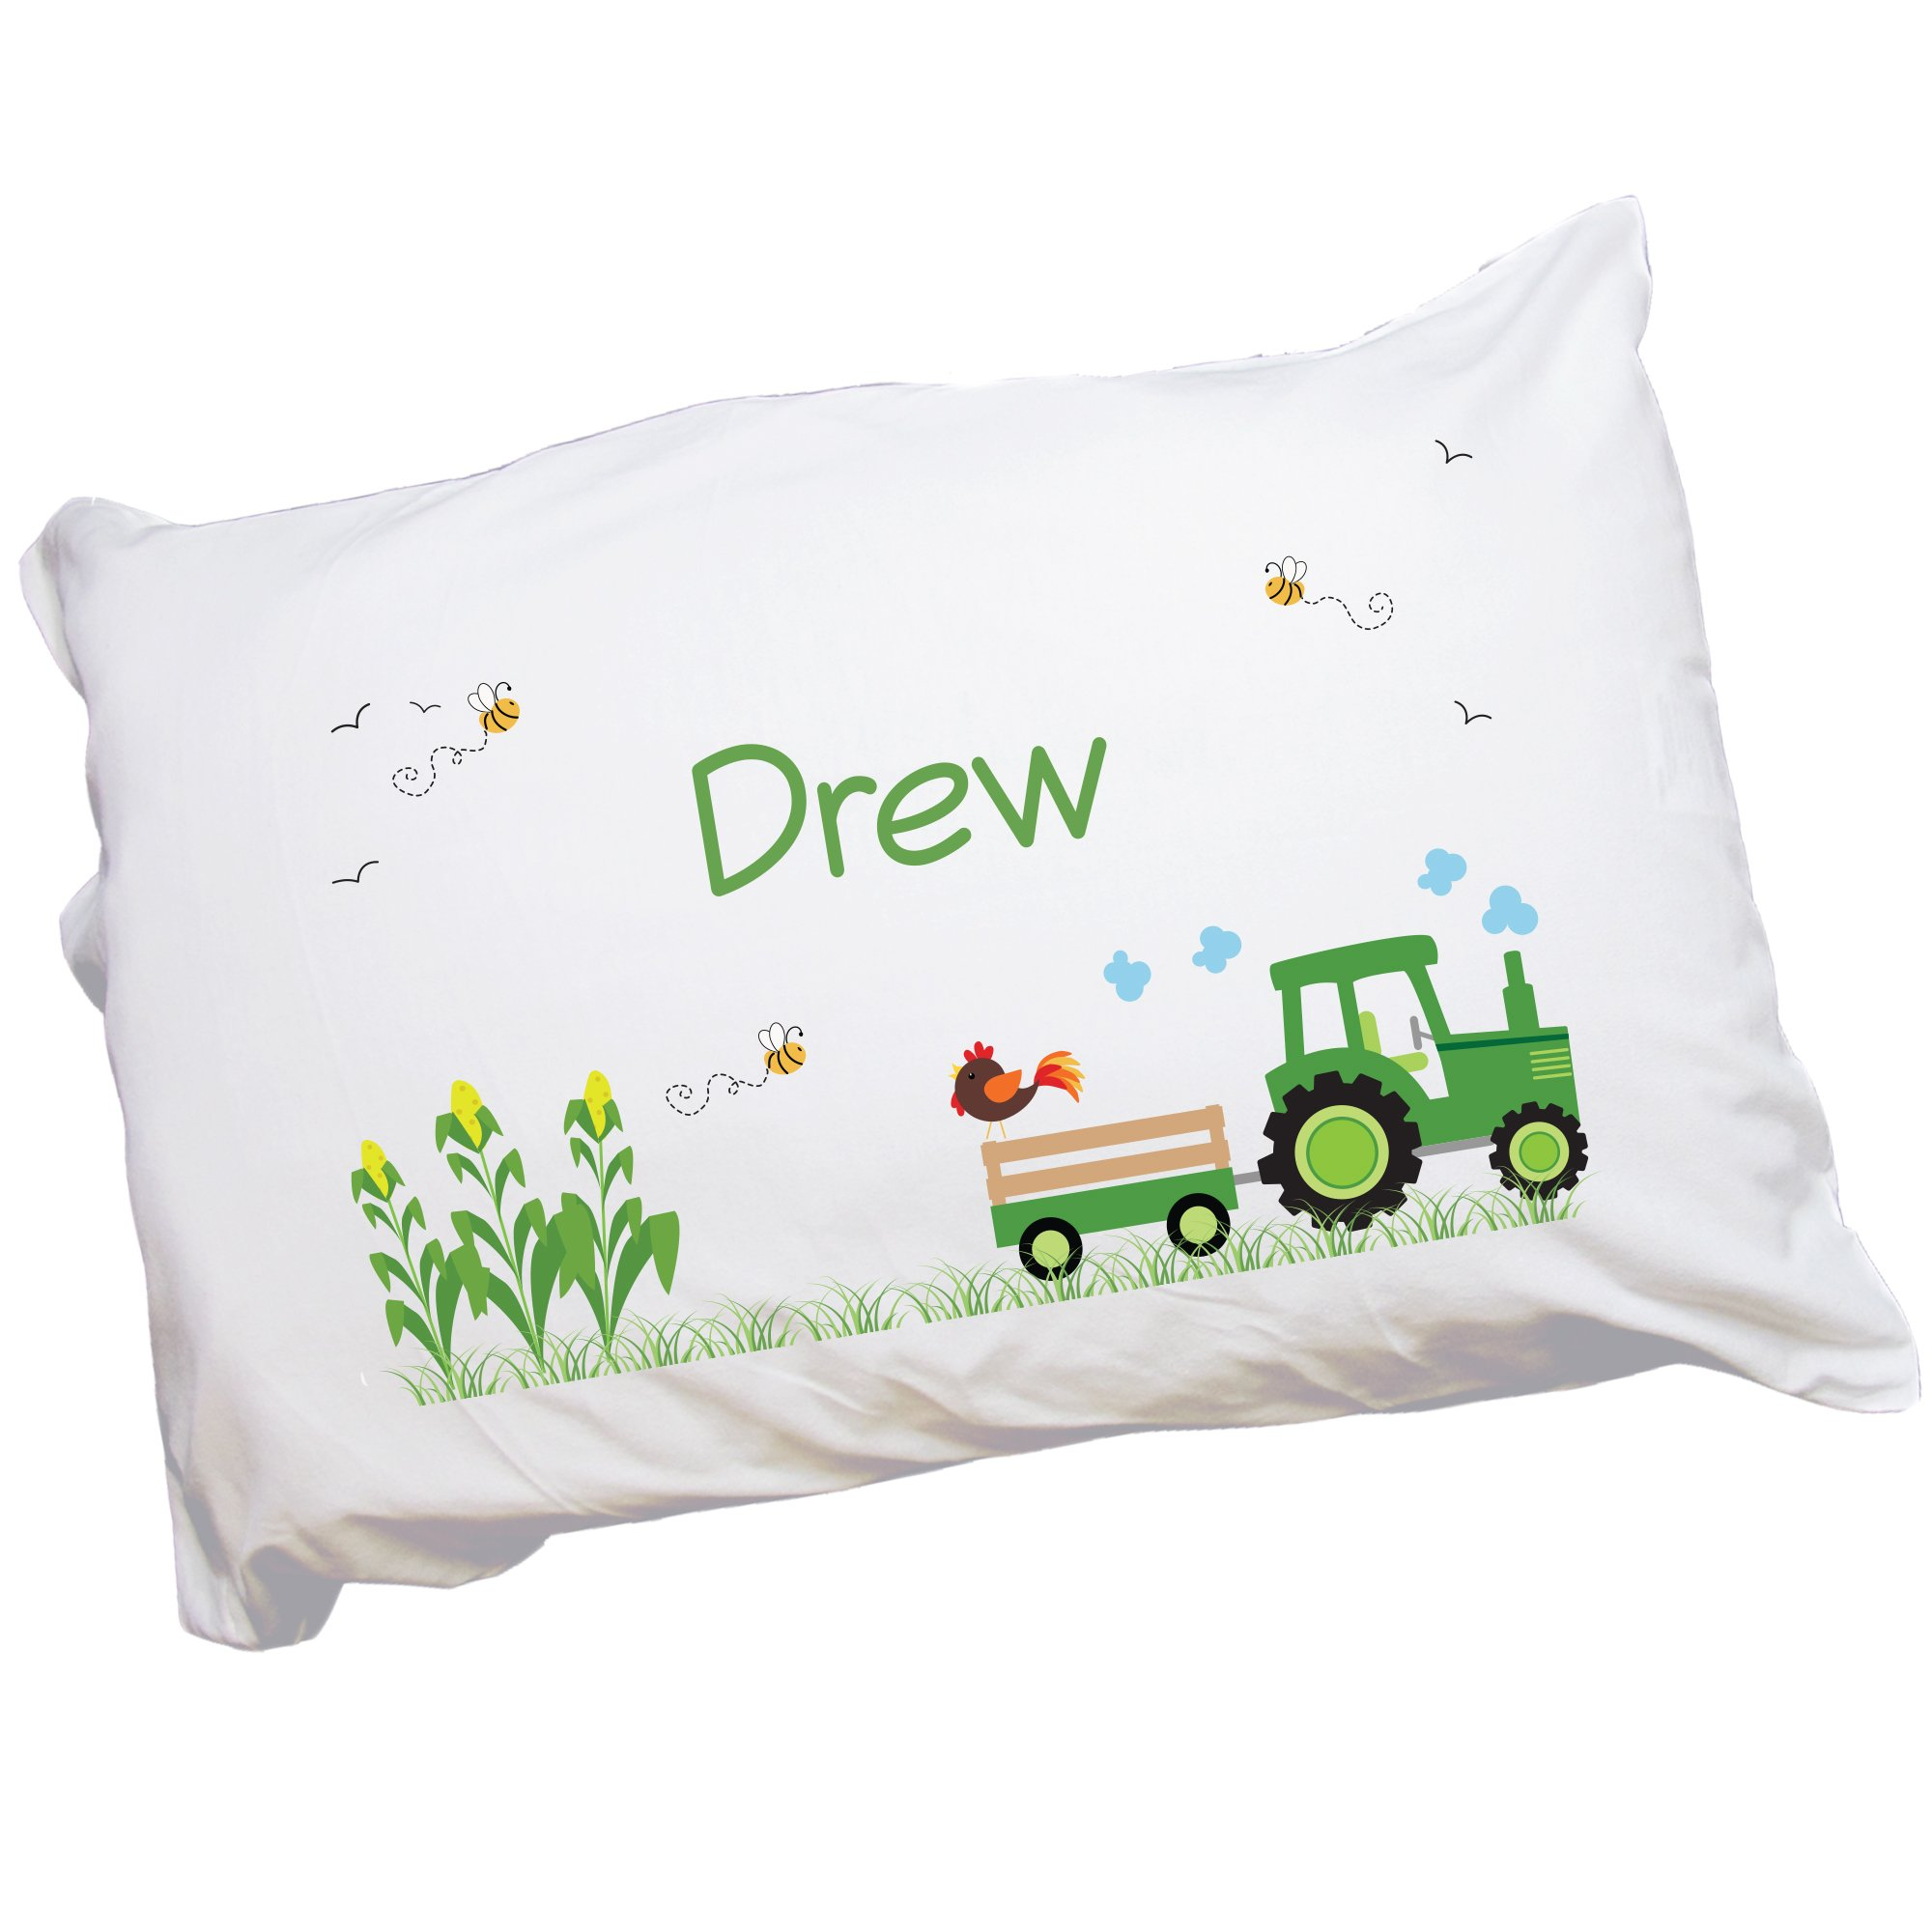 MyBambino Child's Personalized Green Tractor Pillowcase